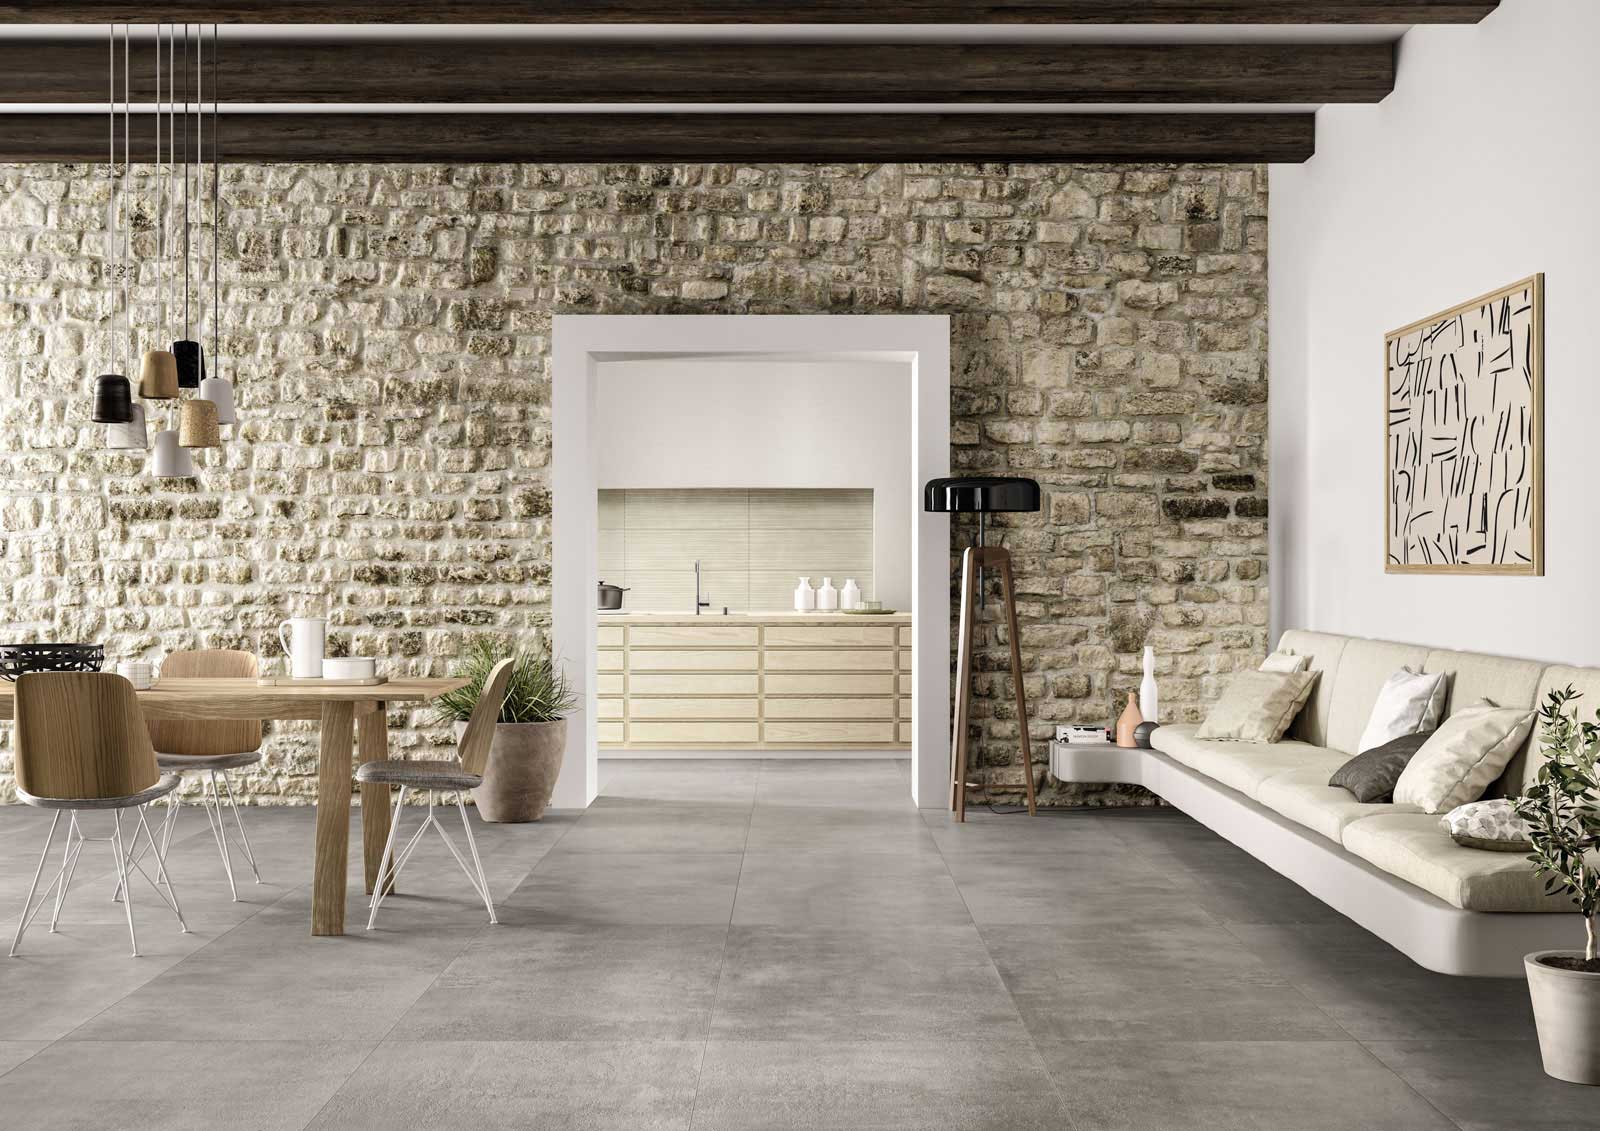 Carrelage high performance pleine masse : Marazzi